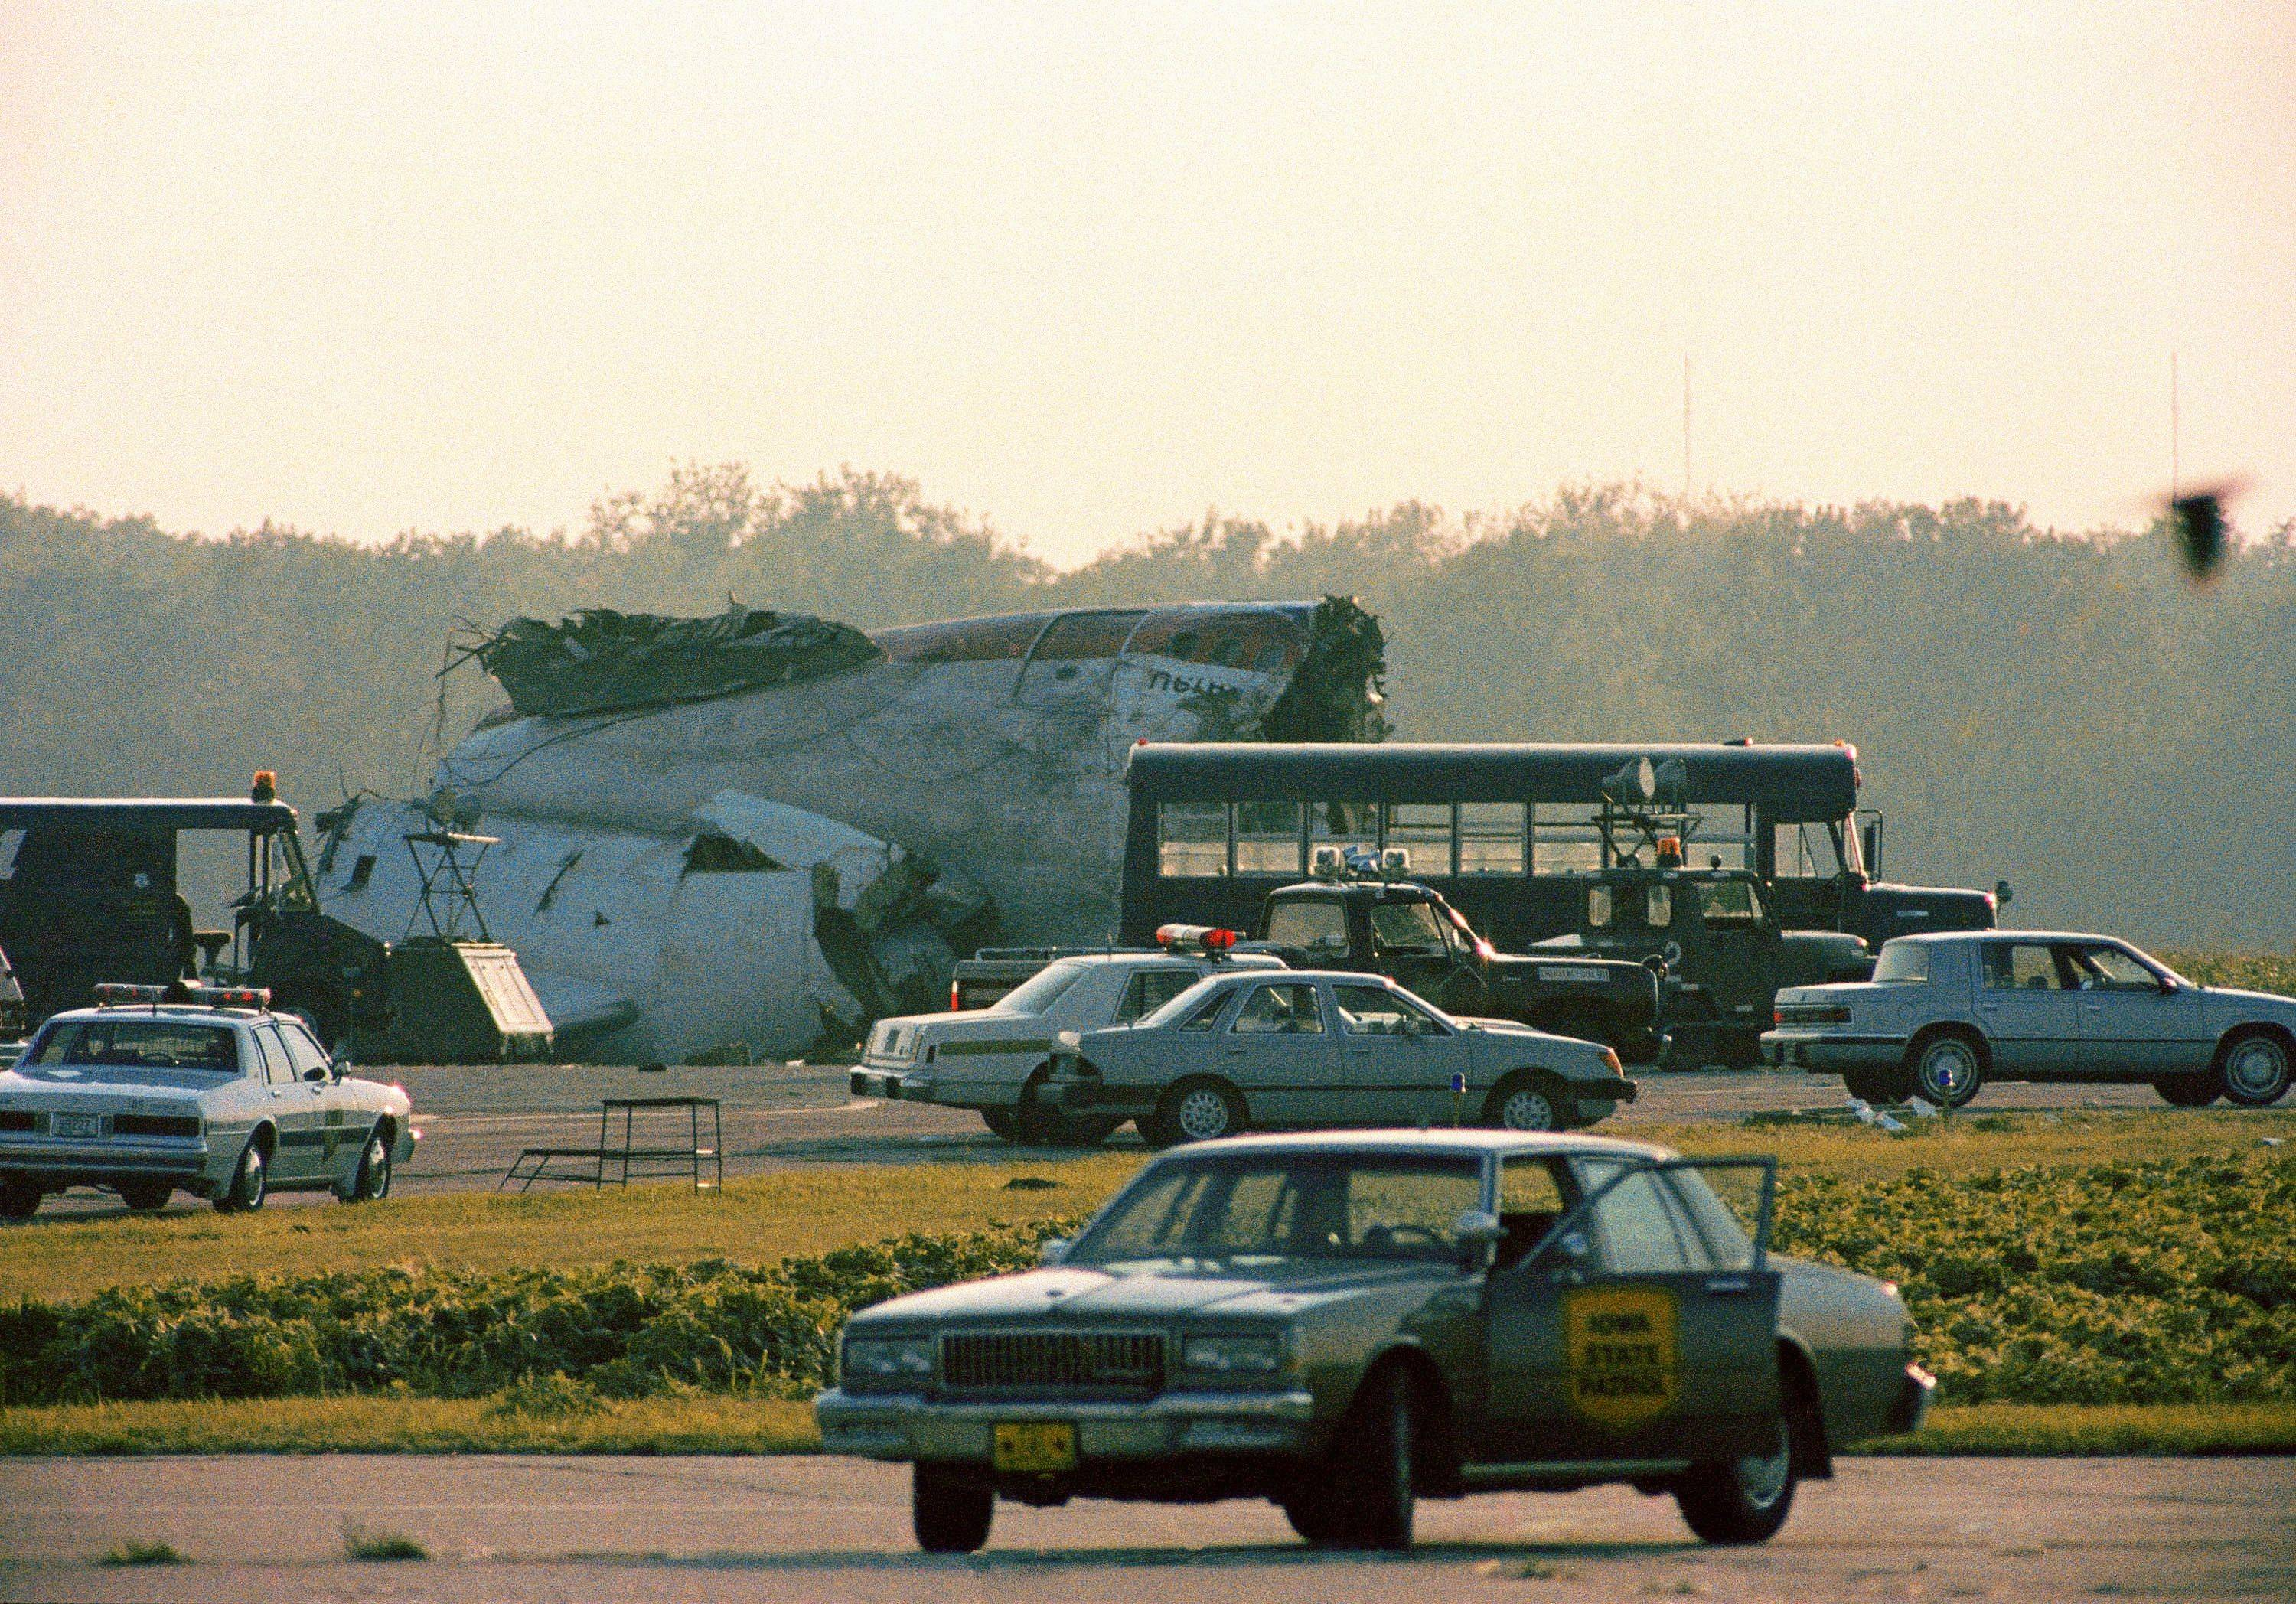 The United Airlines DC-10 after it crashed in Sioux City in 1989.